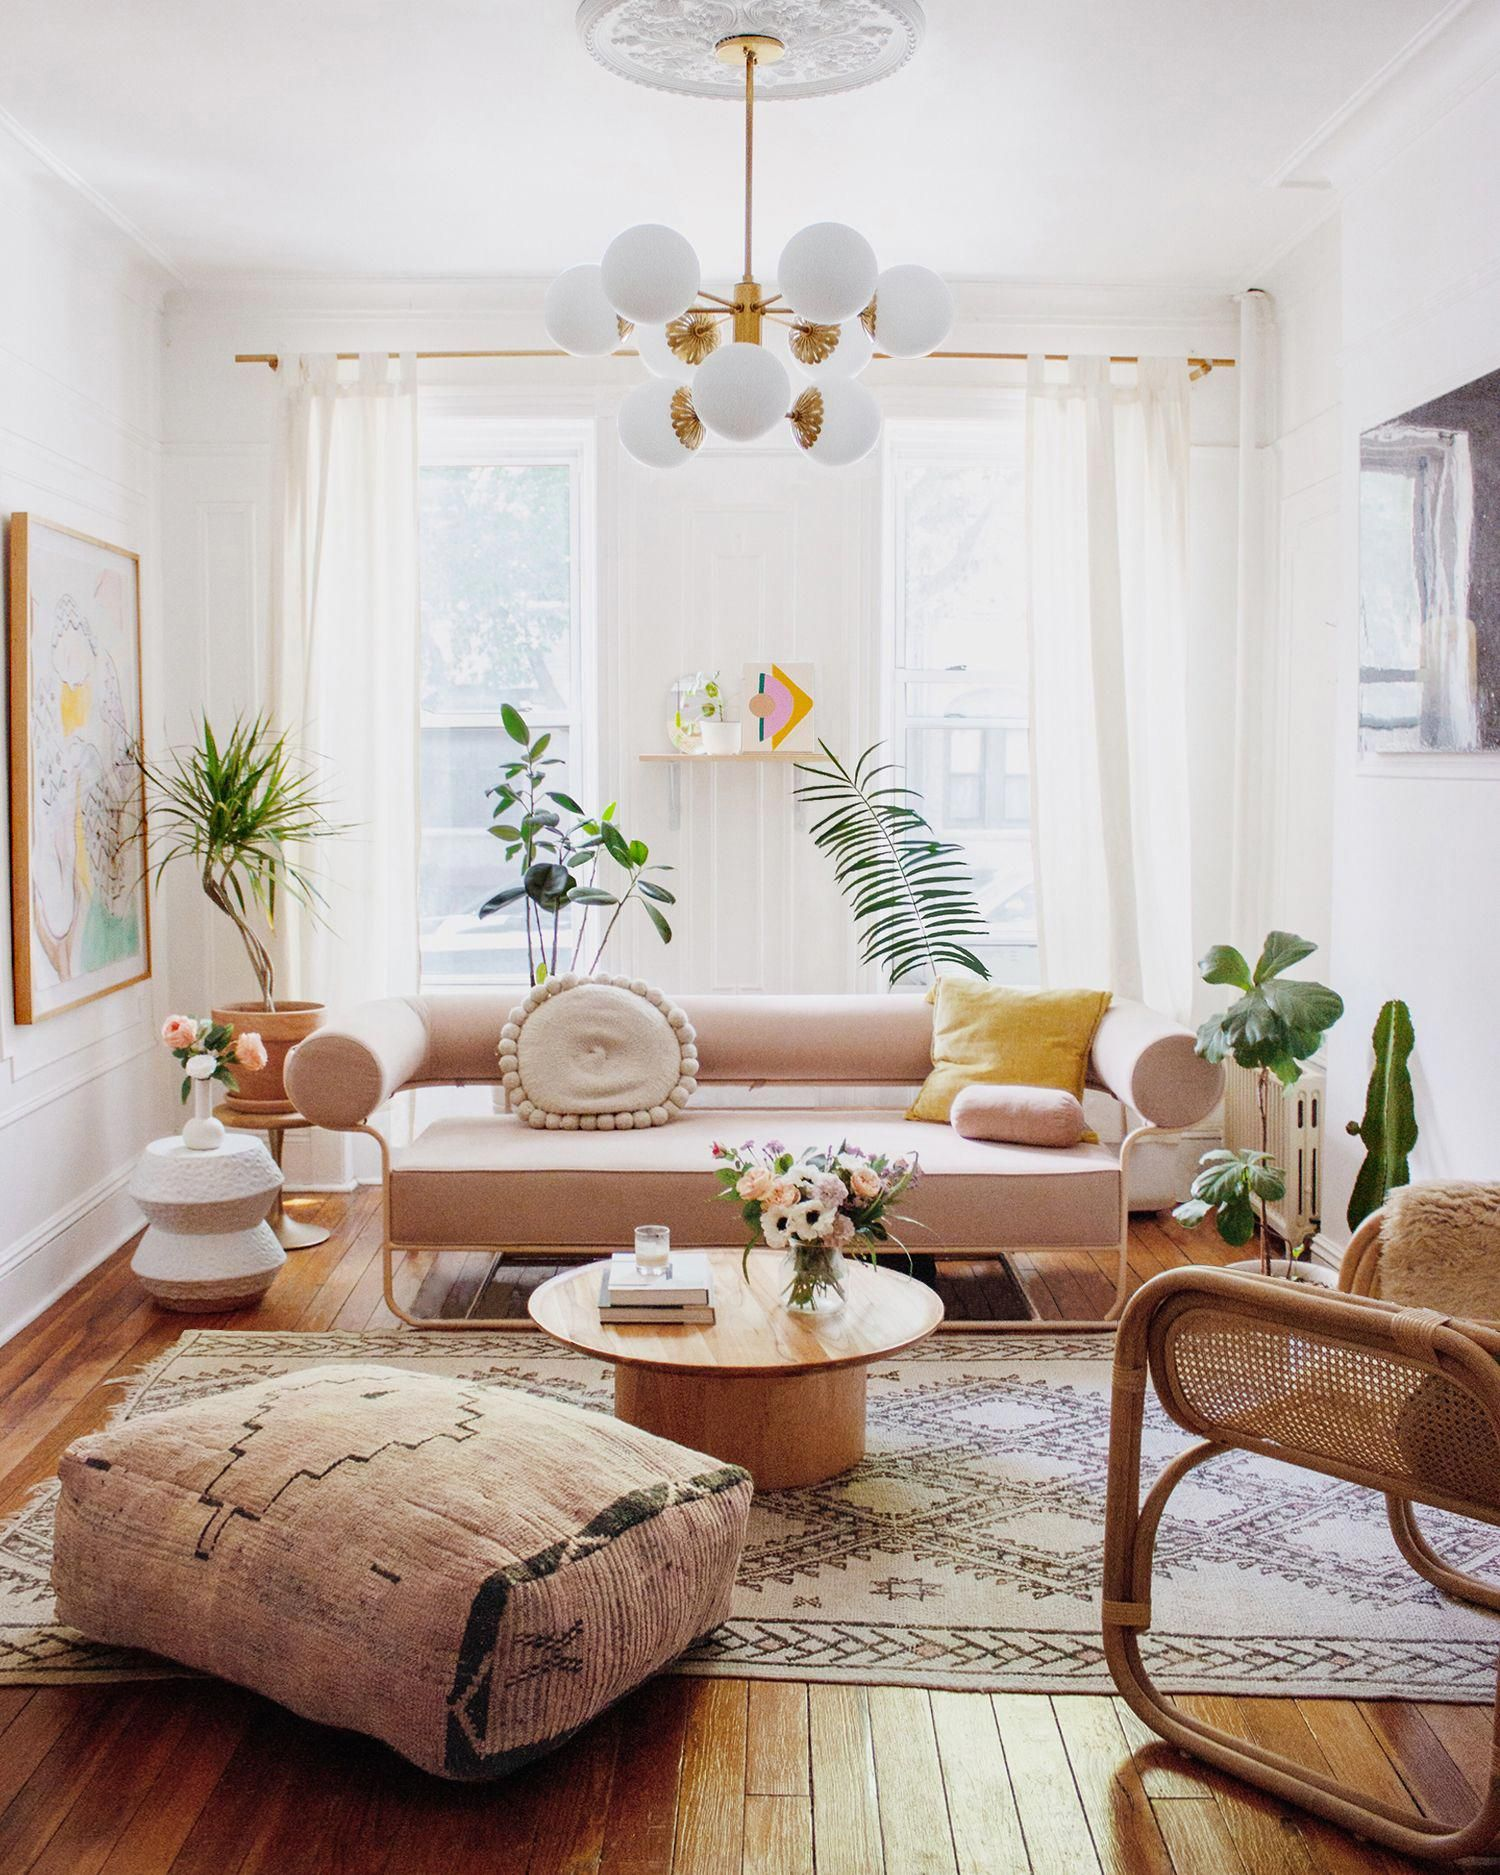 Hudson Valley Lighting Group Paige Chandelier Small Apartment Living Room Design Small Apartment Decorating Living Room Apartment Living Room Design